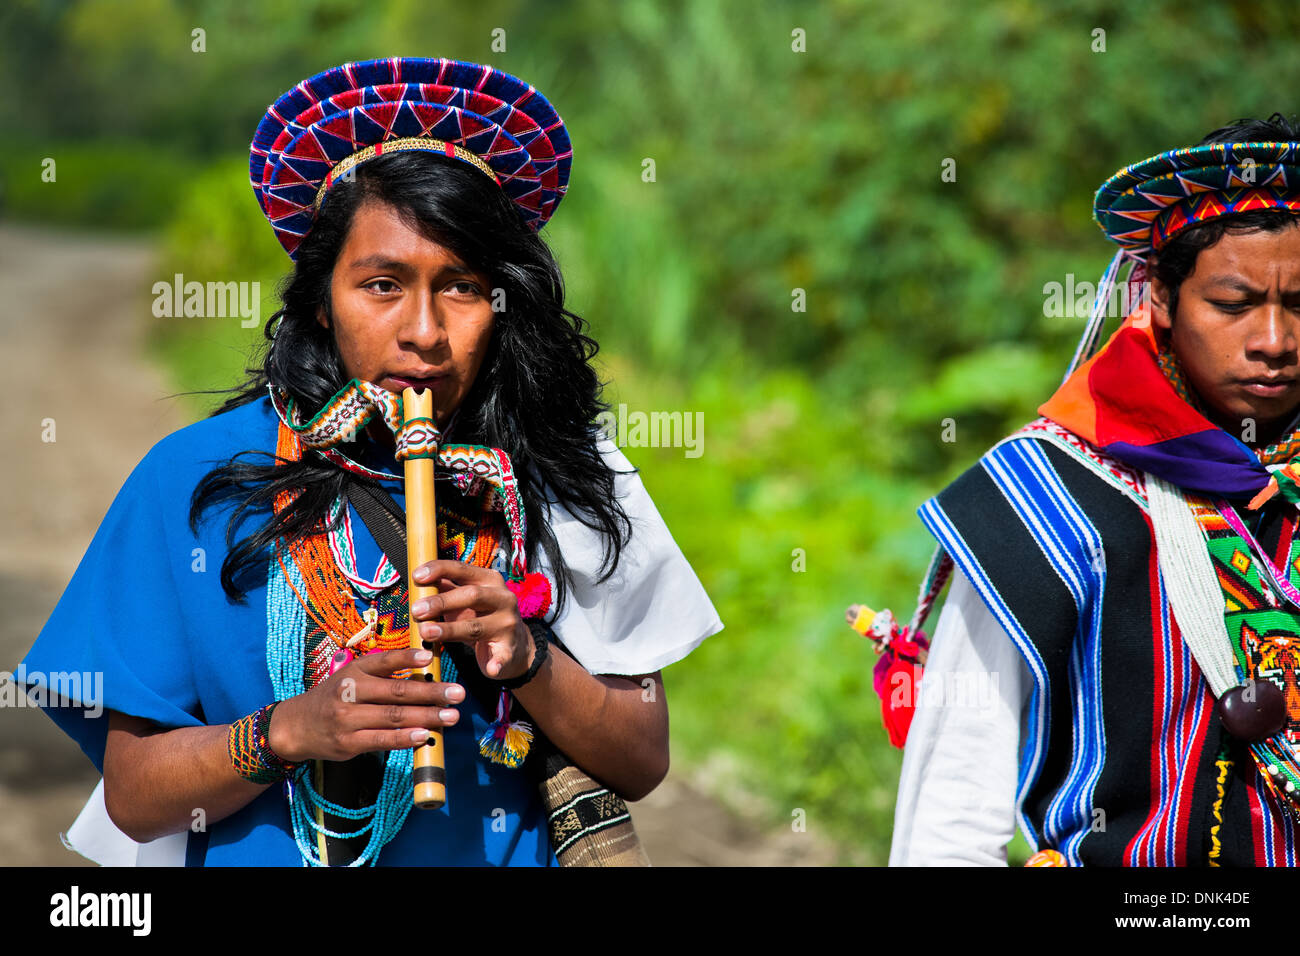 A native from the Kamentsá tribe plays flute during the Carnival of Forgiveness in Sibundoy, Colombia. - Stock Image